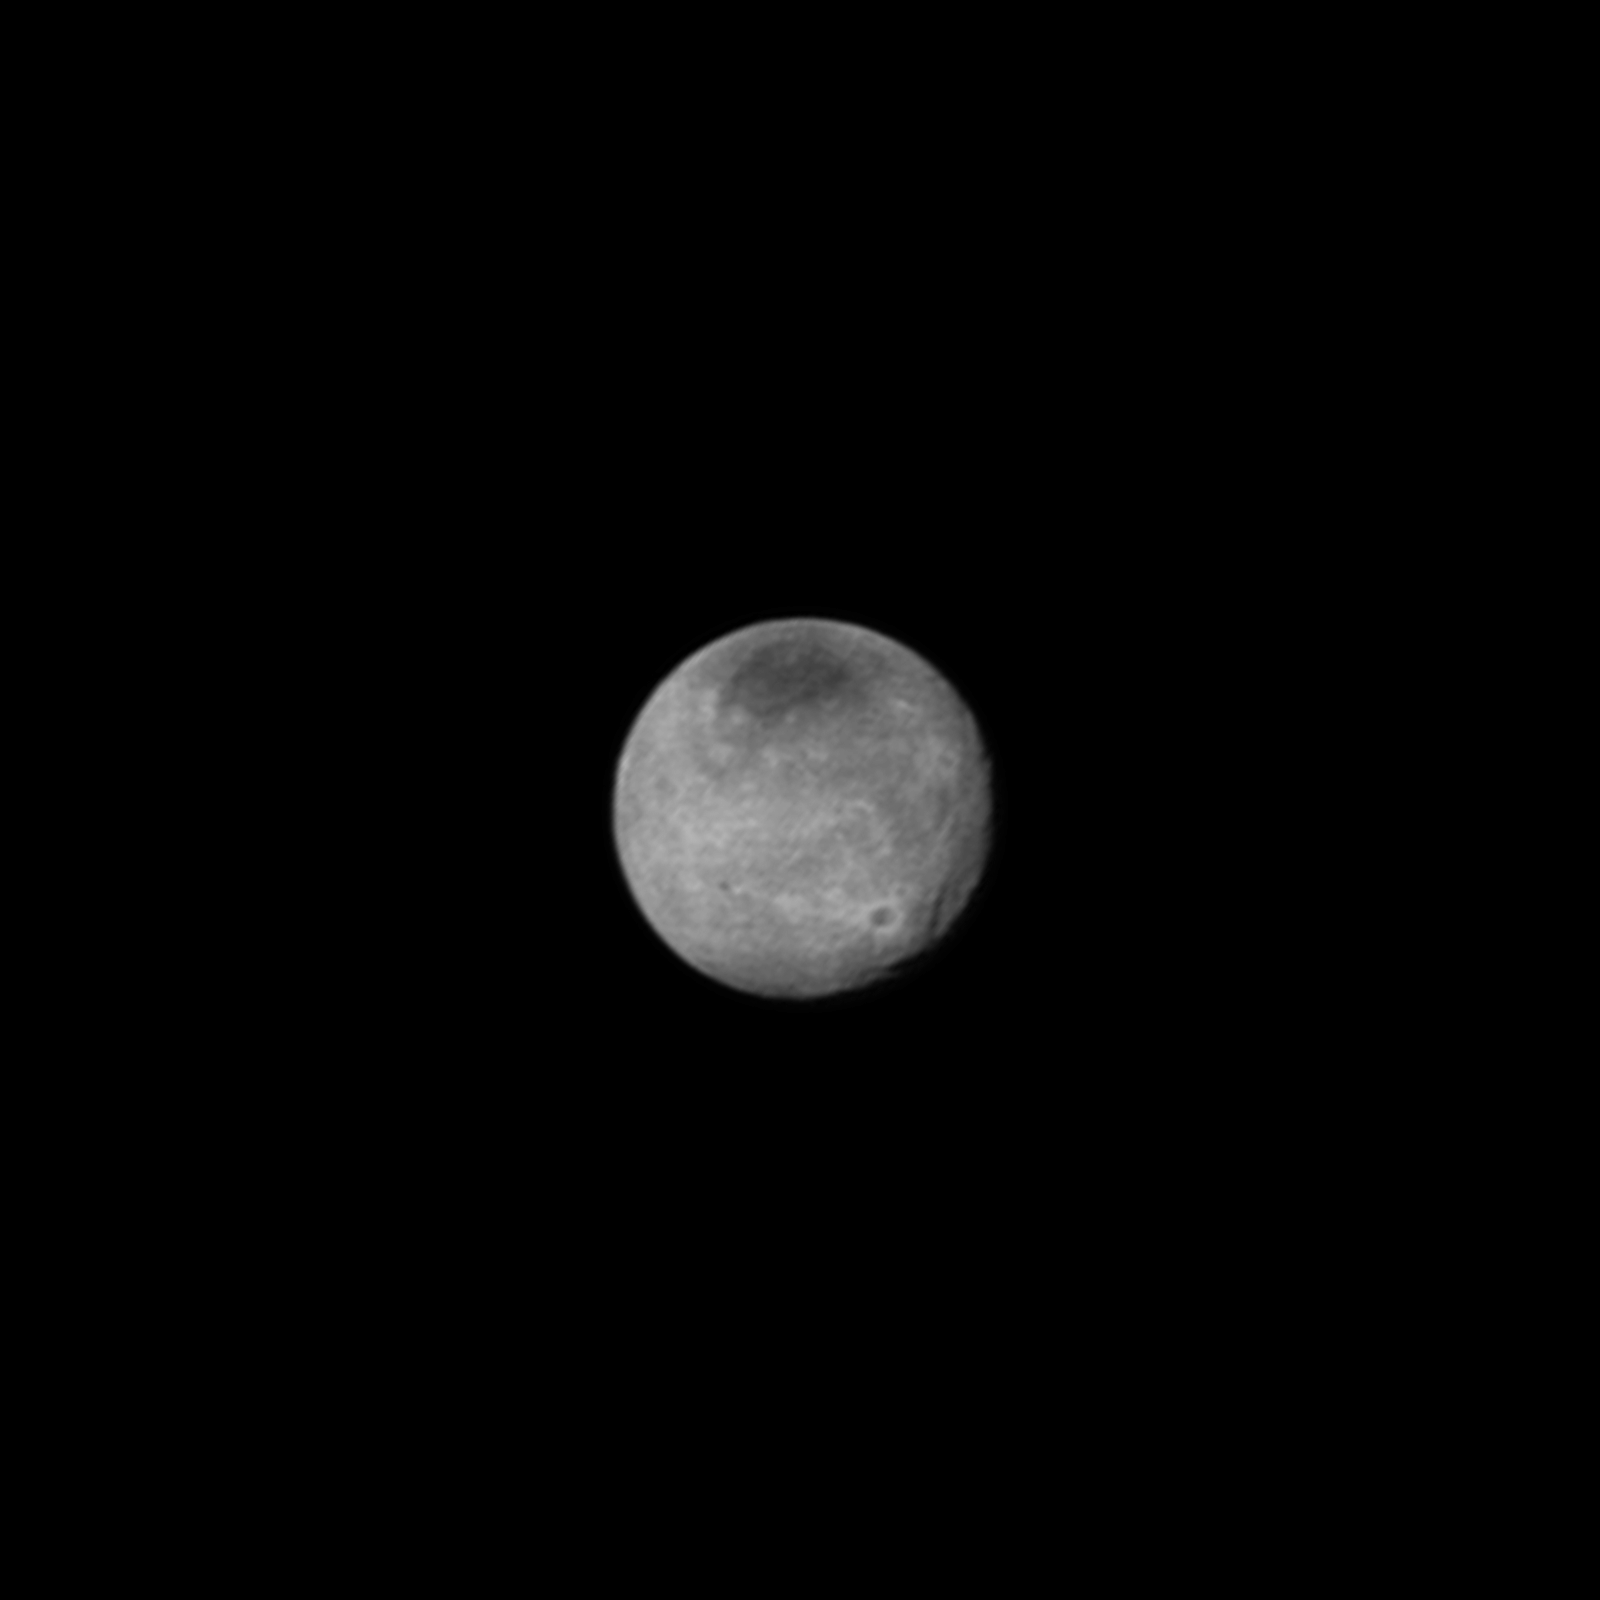 Charon on July 12 from a distance of 1.6 million miles (2.5 million kilometers)